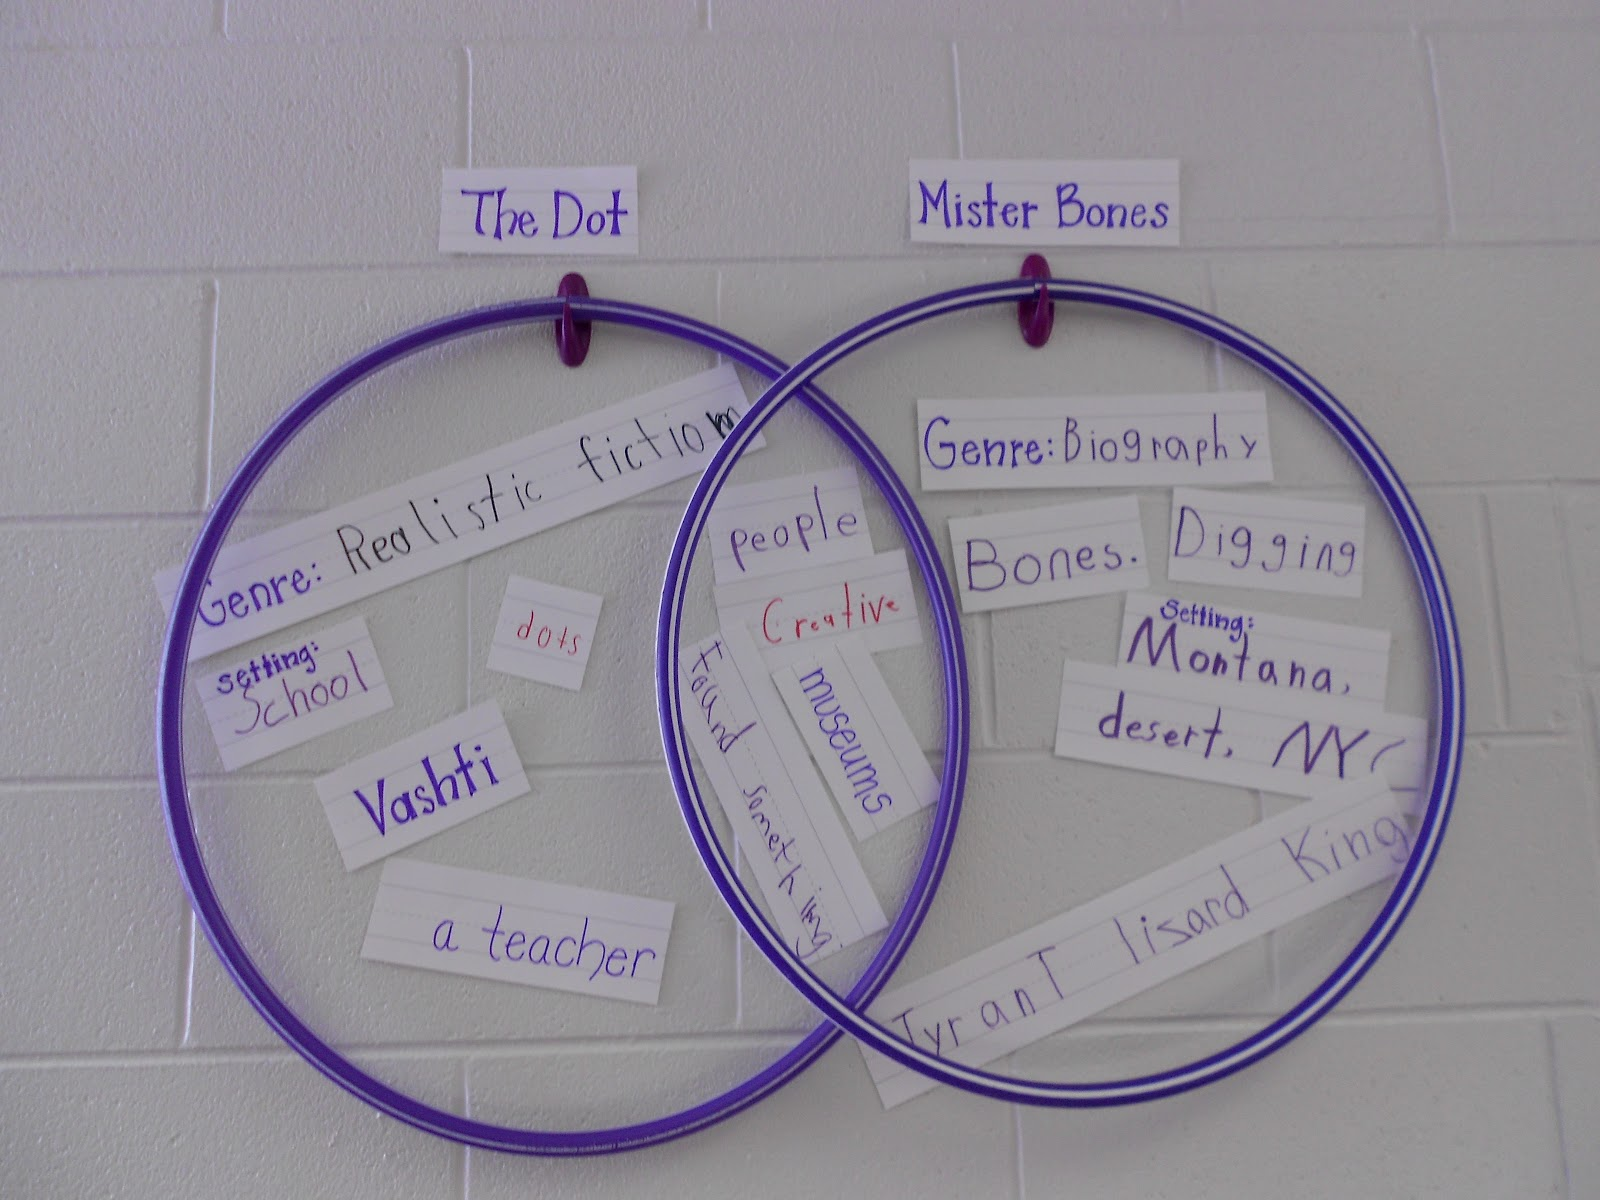 Prayers purple elephants hula hoop venn diagram hula hoop venn diagram ccuart Image collections